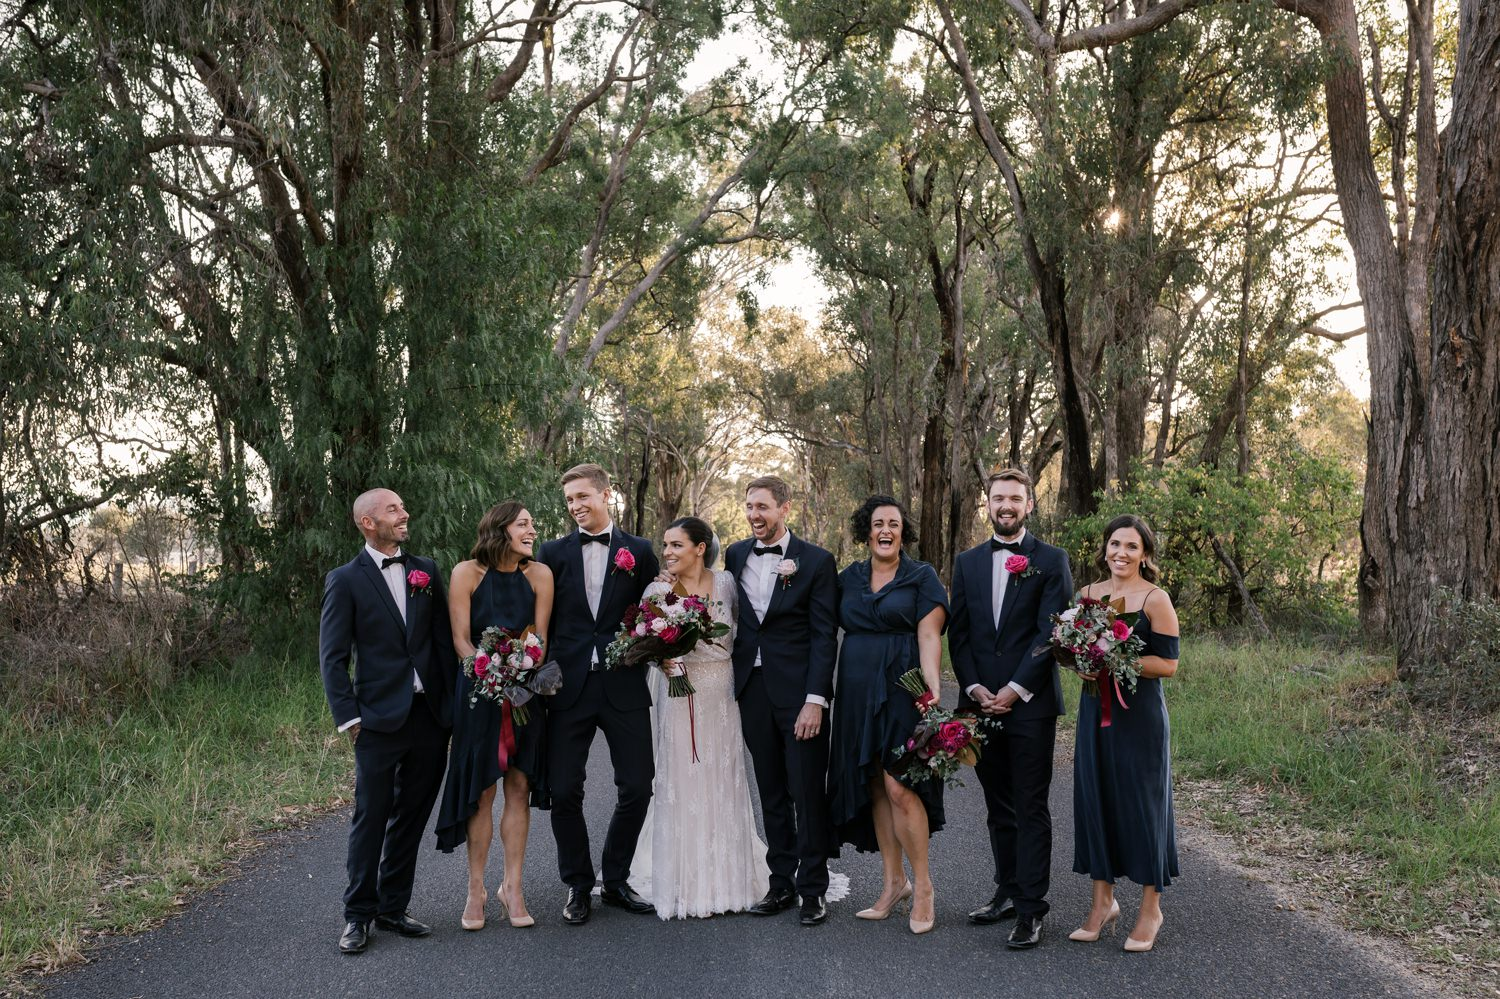 sarah jared the vinegrove mudgee canberra wedding photographer erin latimore 73.jpg